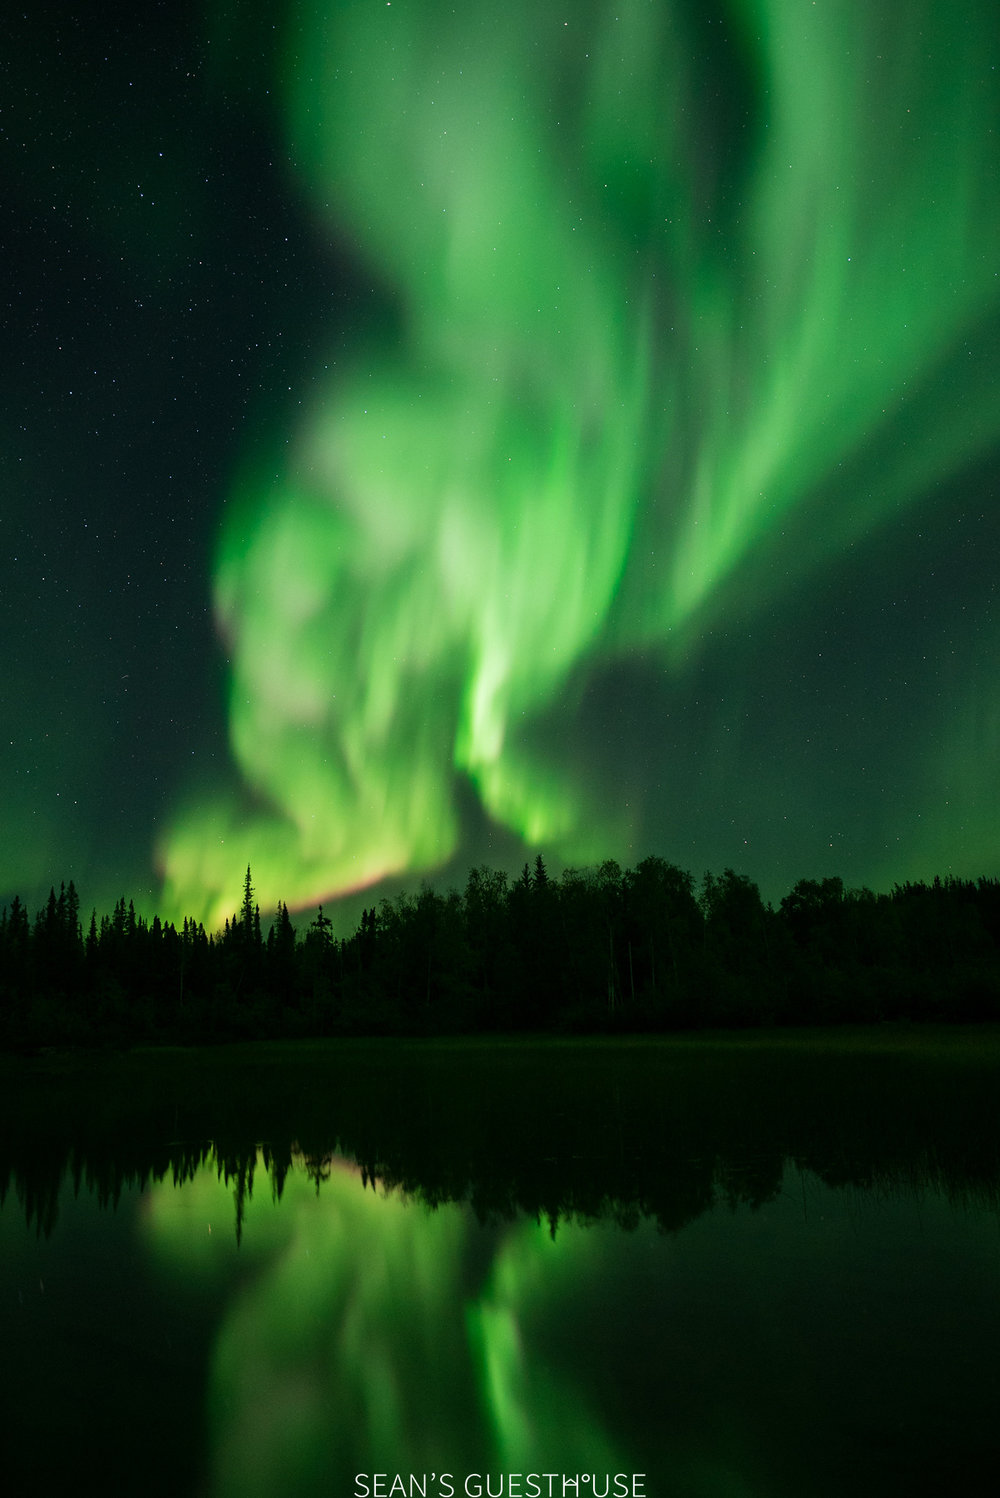 Sean's Guesthouse - Northern Lights Tour Yellowknife - 3.jpg